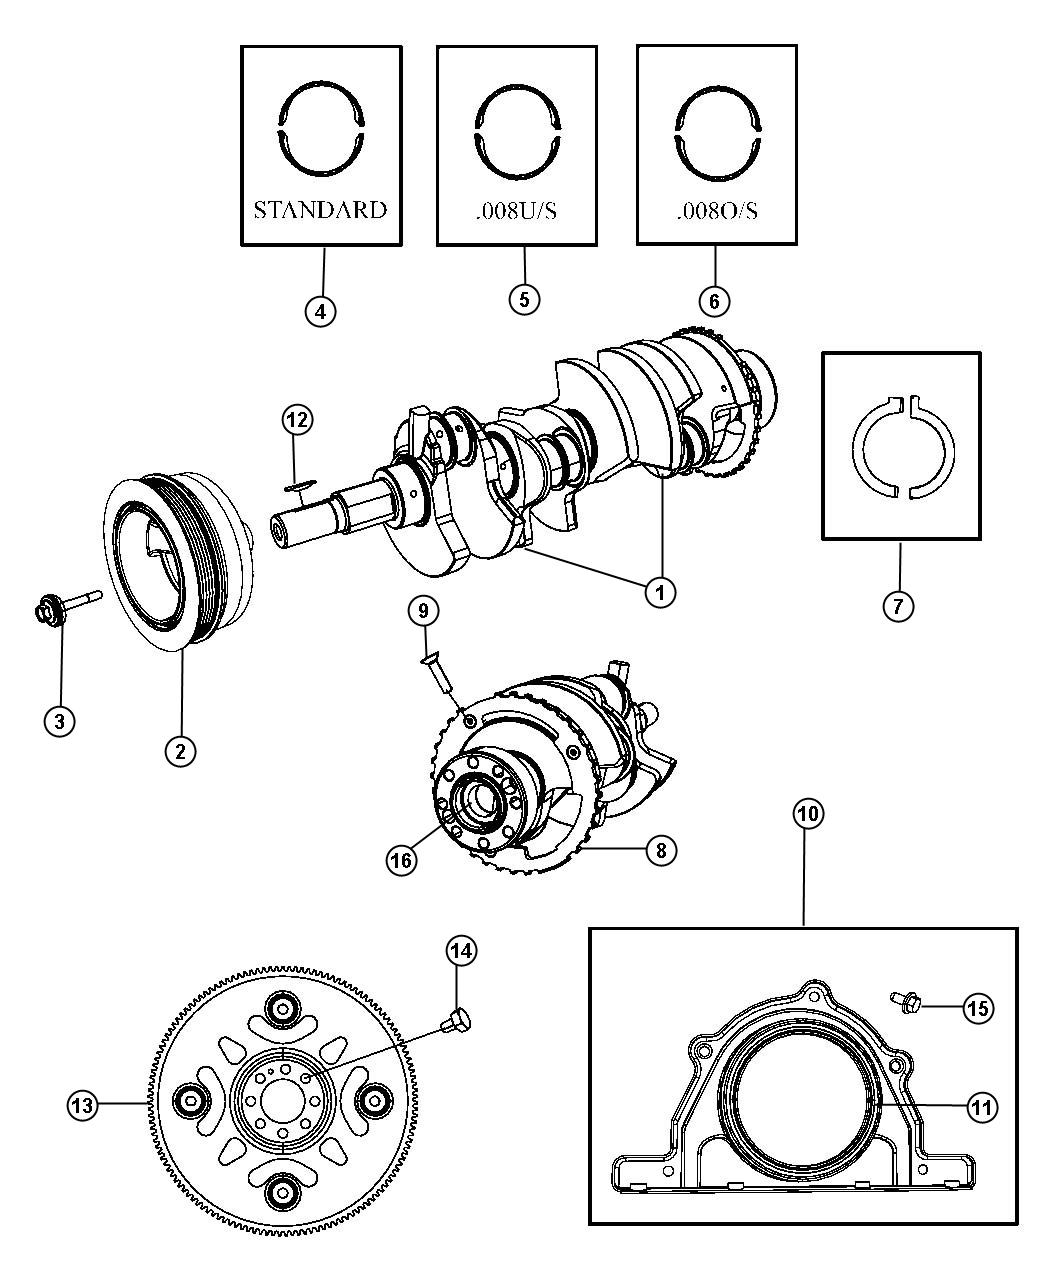 Chrysler 300 Crankshft Includes Tone Ring For Crank